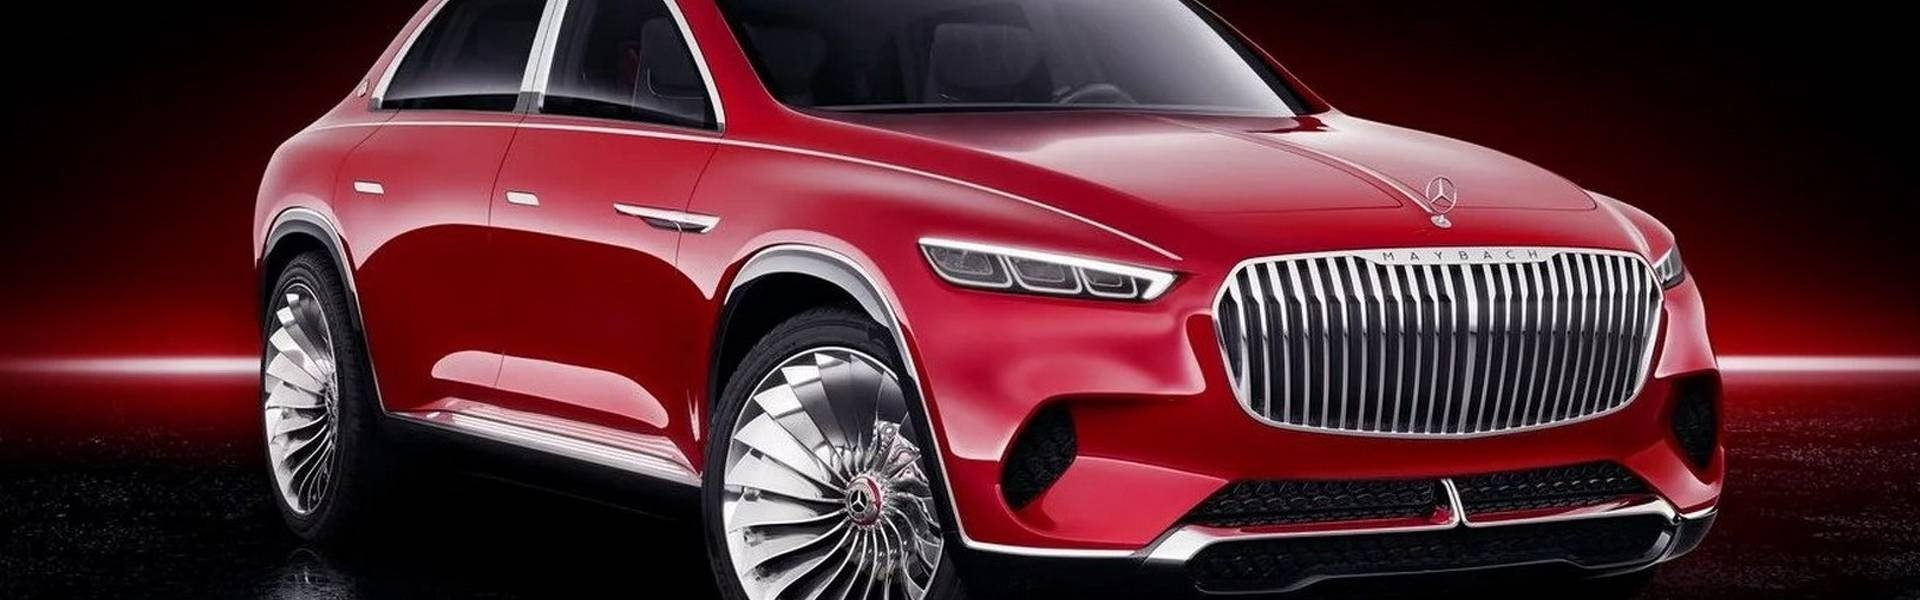 vision-mercedes-maybach-ultimate-luxury-leaked-official-image (2).jpg